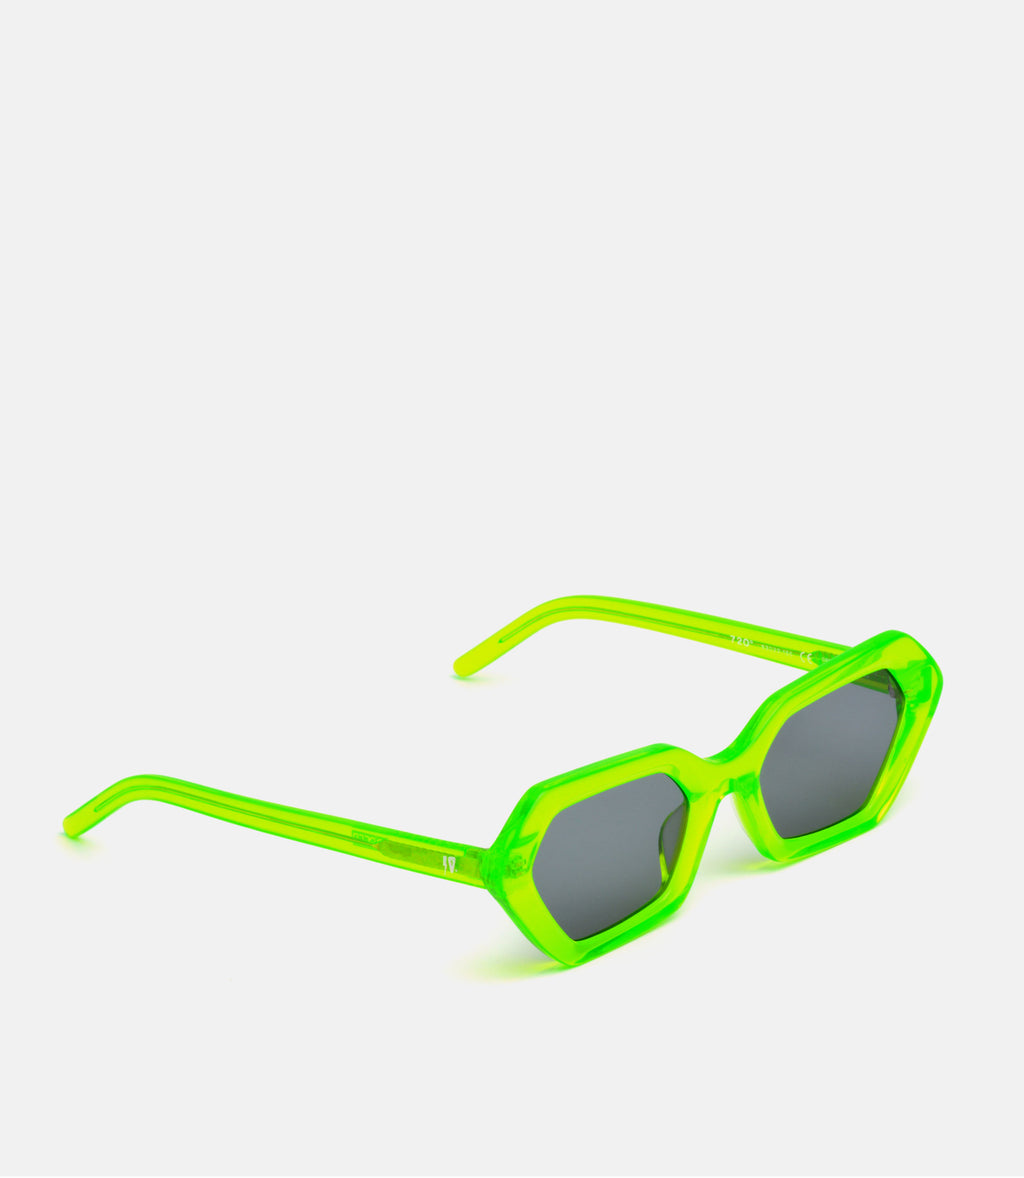 AKILA X 10DEEP 720 SUNGLASSES NEON GREEN